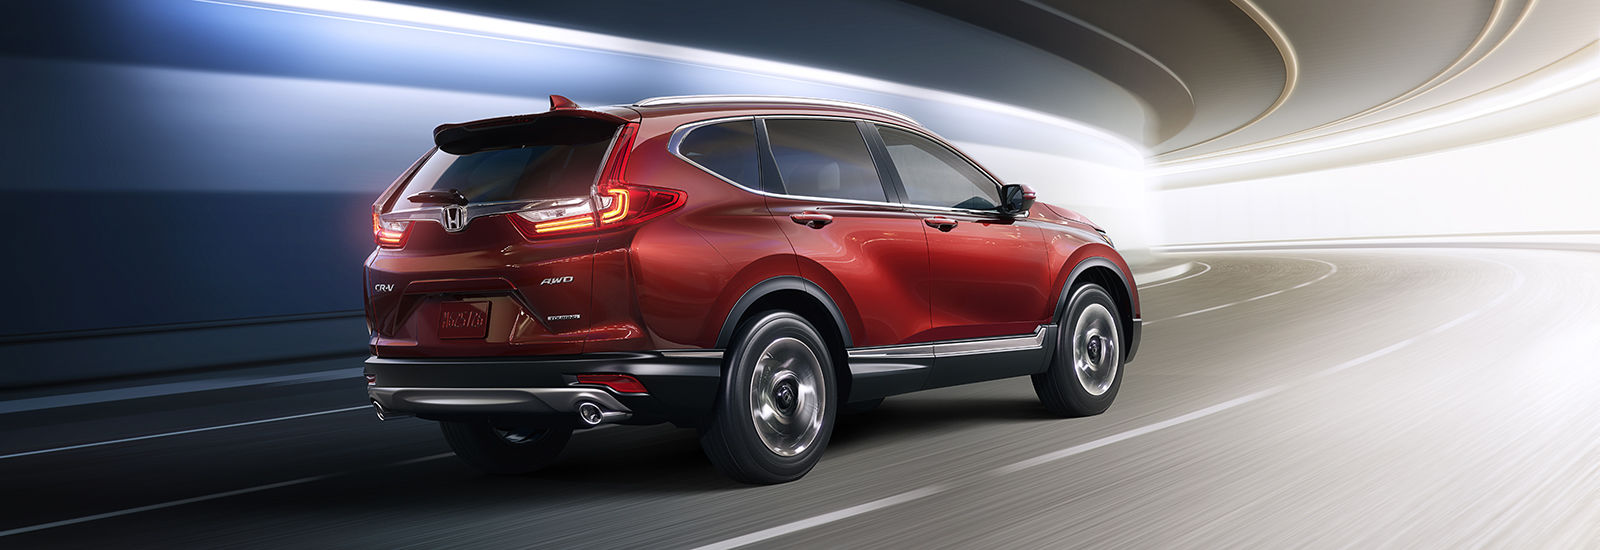 2017 Honda CR-V price, specs and release date | carwow